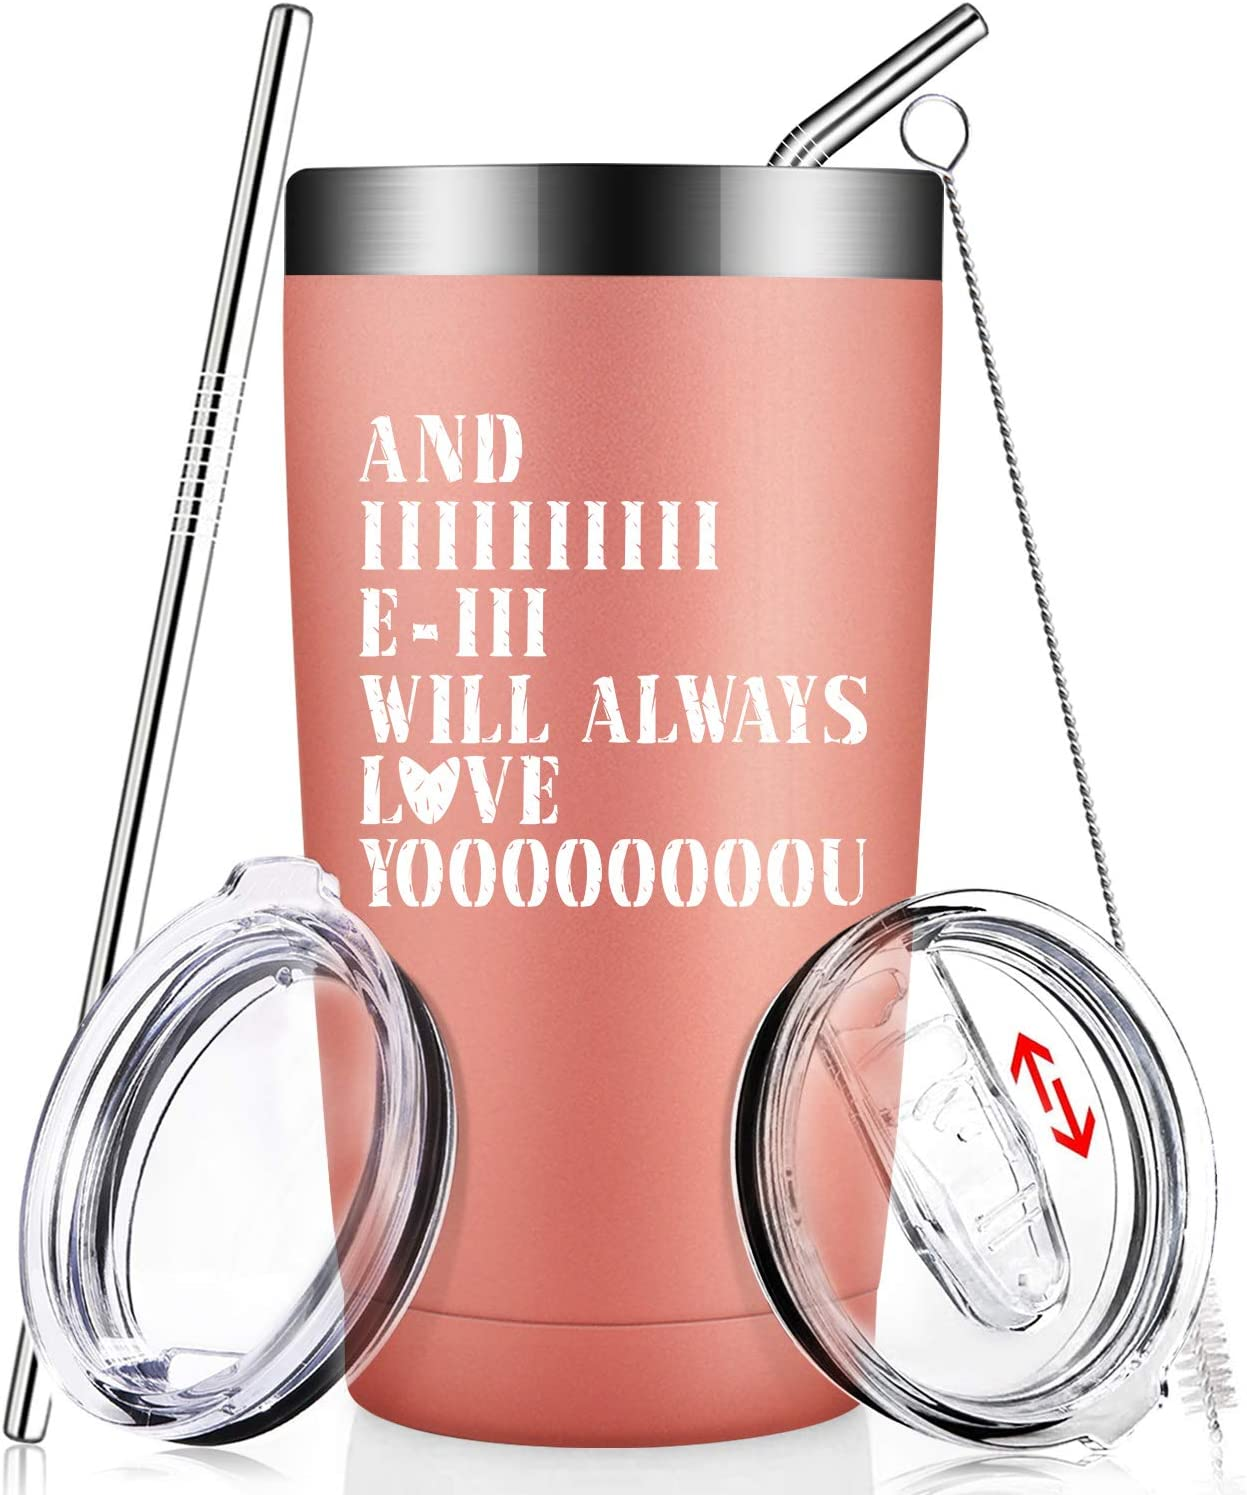 Amazon Com And I Will Always Love You Wife Gifts From Husband Funny Birthday Christmas Valentines Day Mother S Day Anniversary Present Idea For Wife Husband Mom Friend Women Her